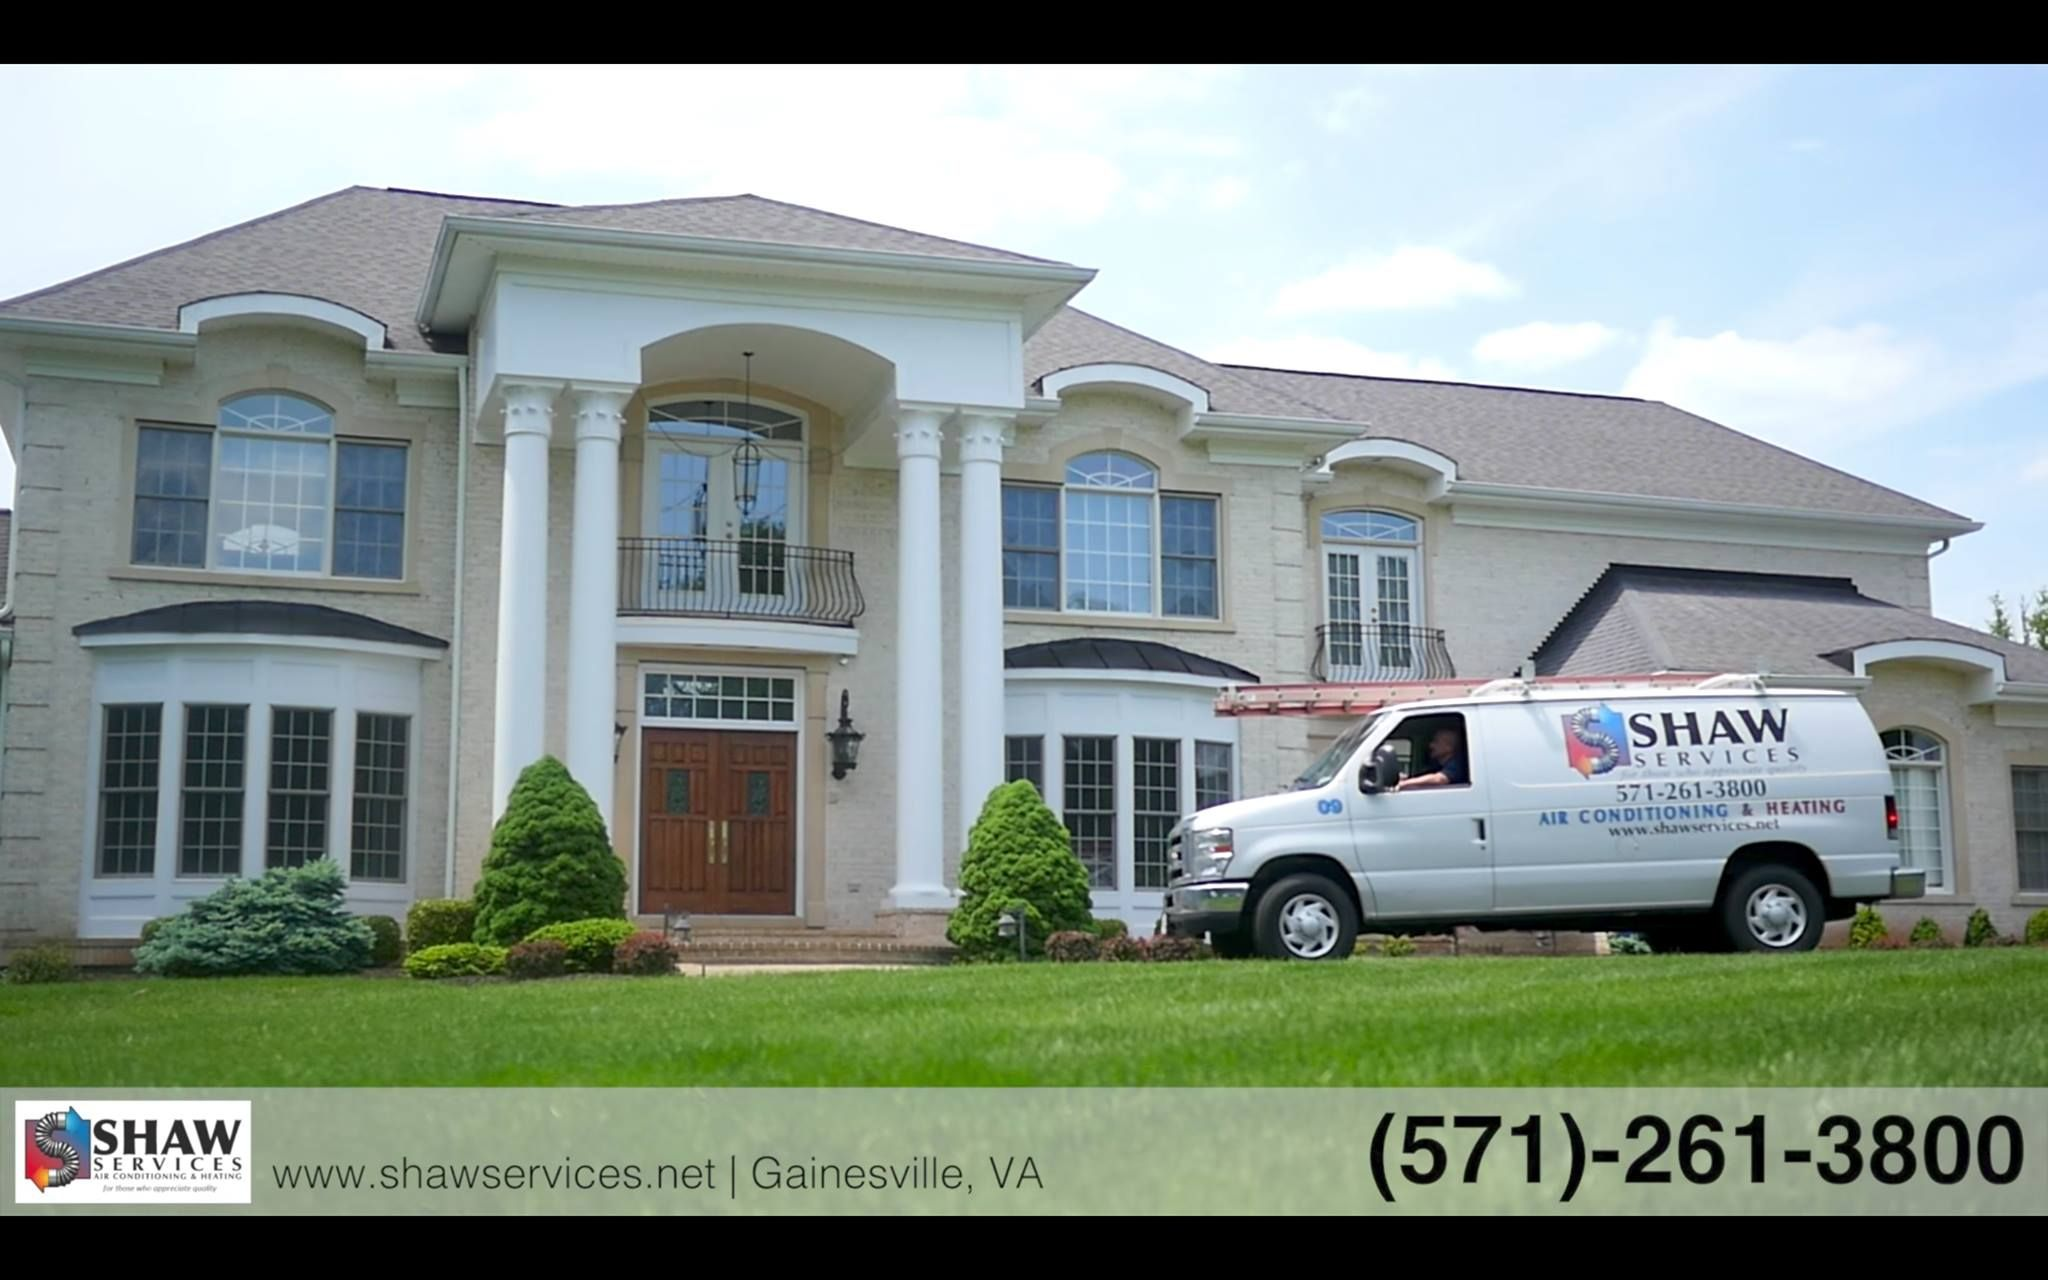 We Have Experts And Professional Workers To Handle All Problems